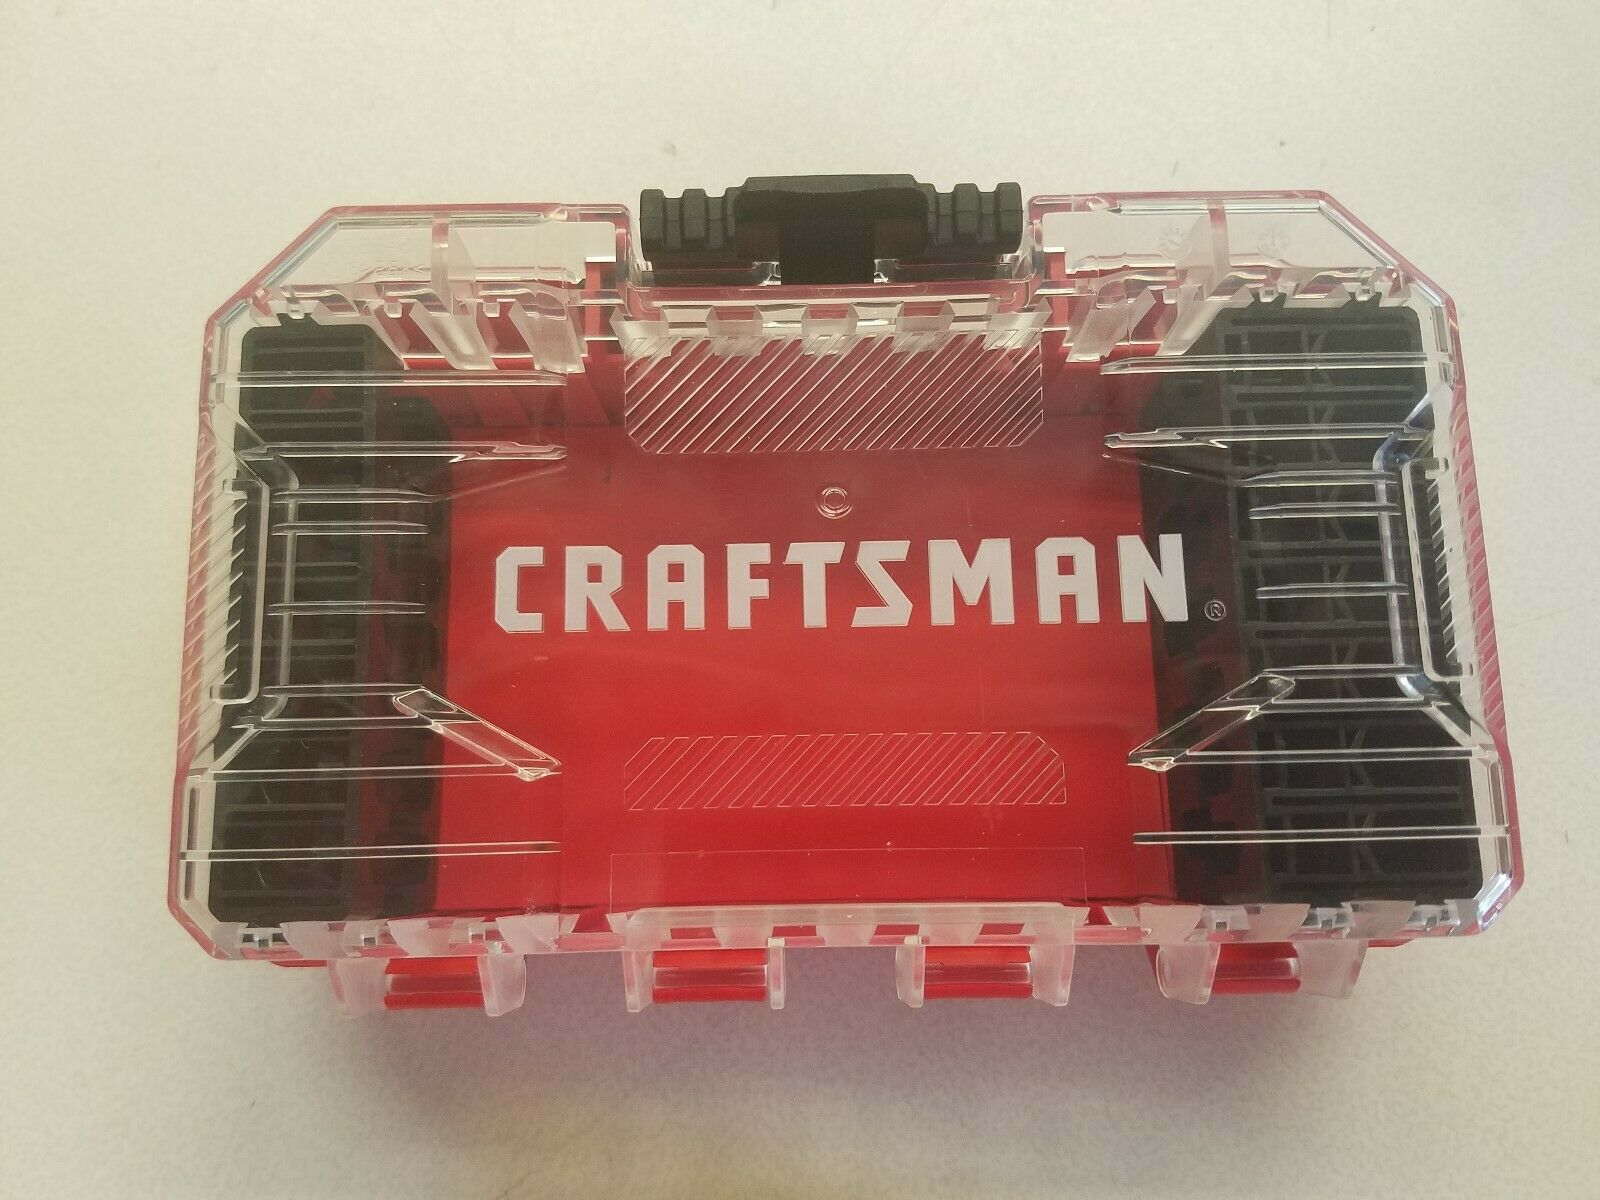 CRAFTSMAN Impact Drill and Driver Set ! -Empty Box Only- ! C